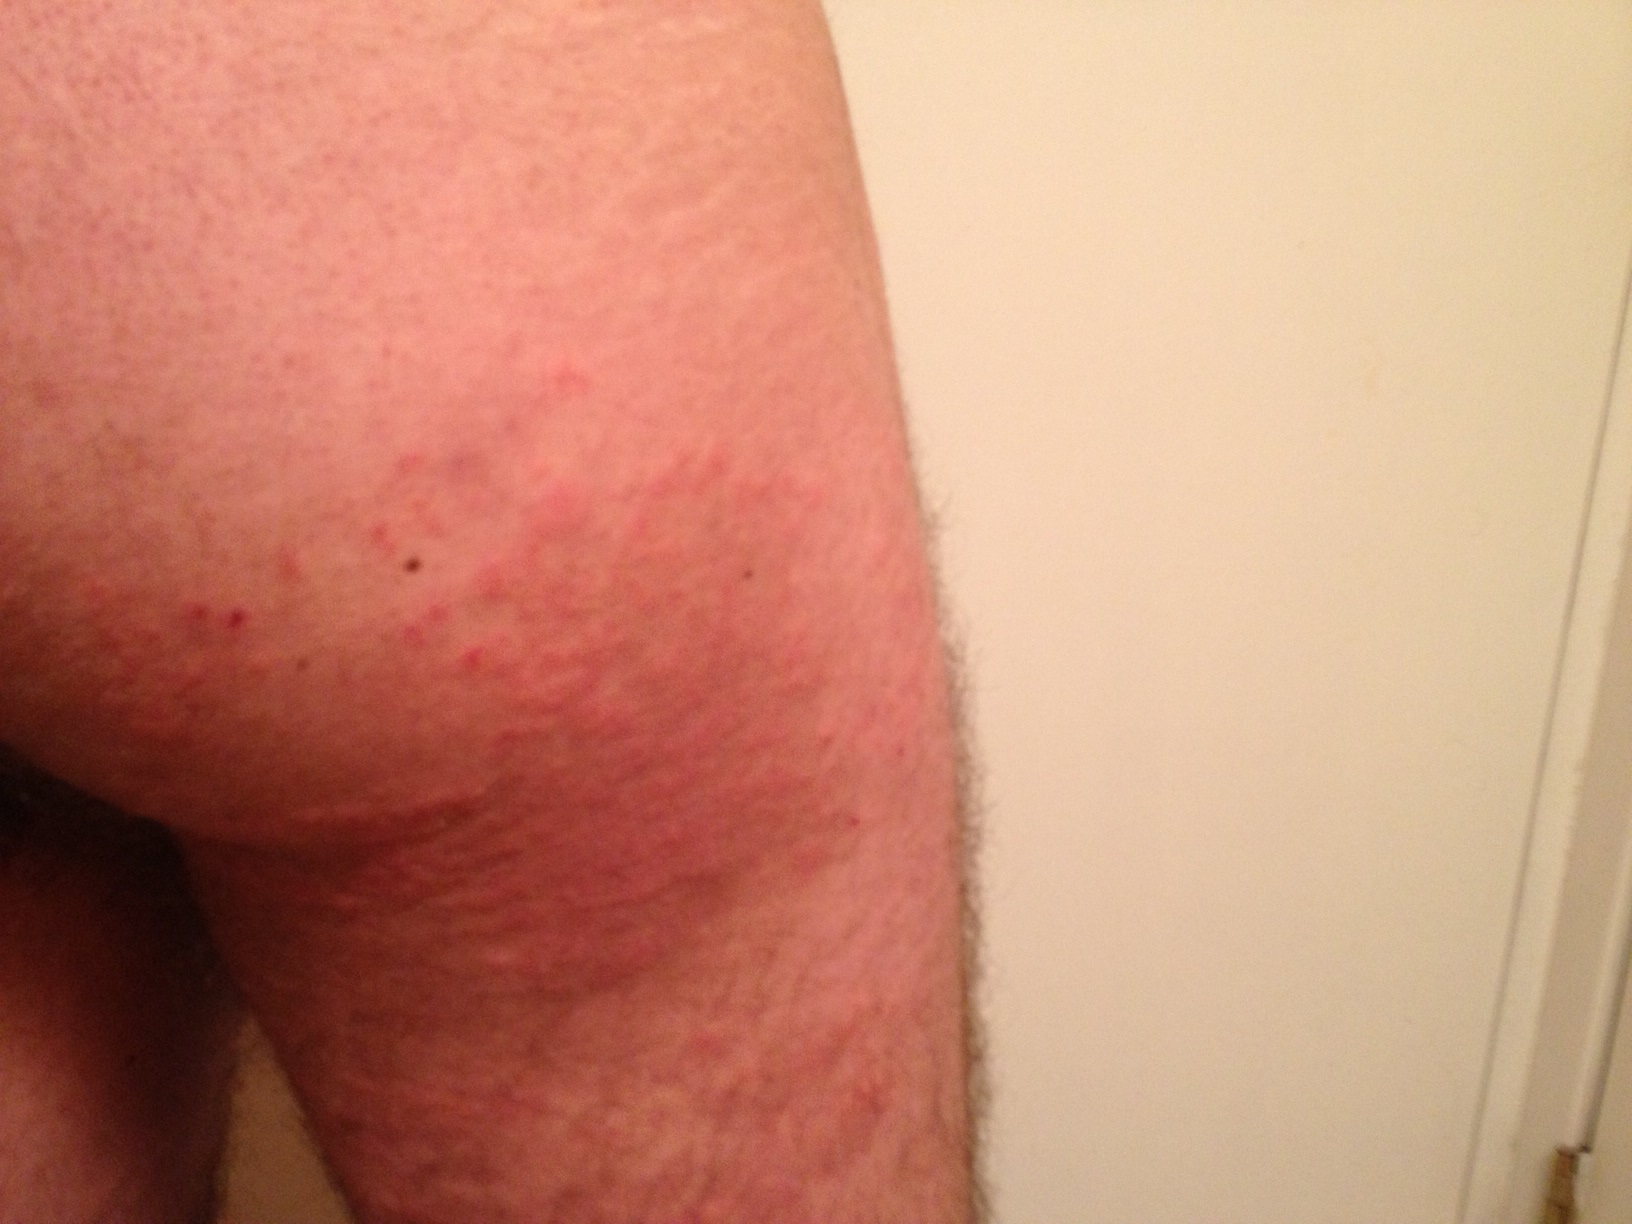 Rashes on the butt